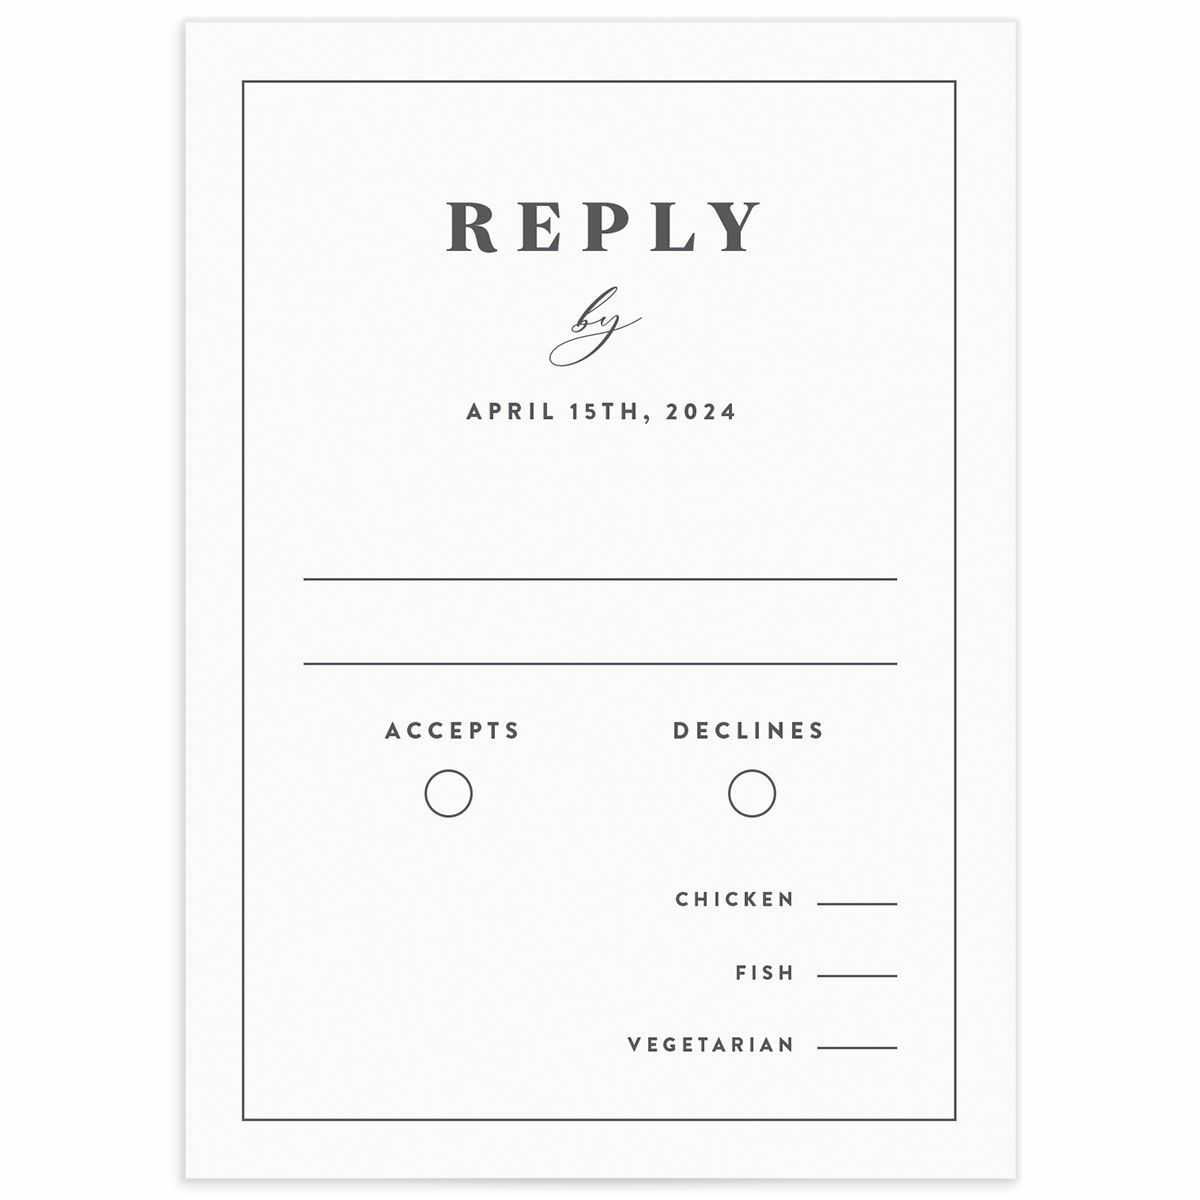 A Wedding Response Card from the Retro Botanical Collection